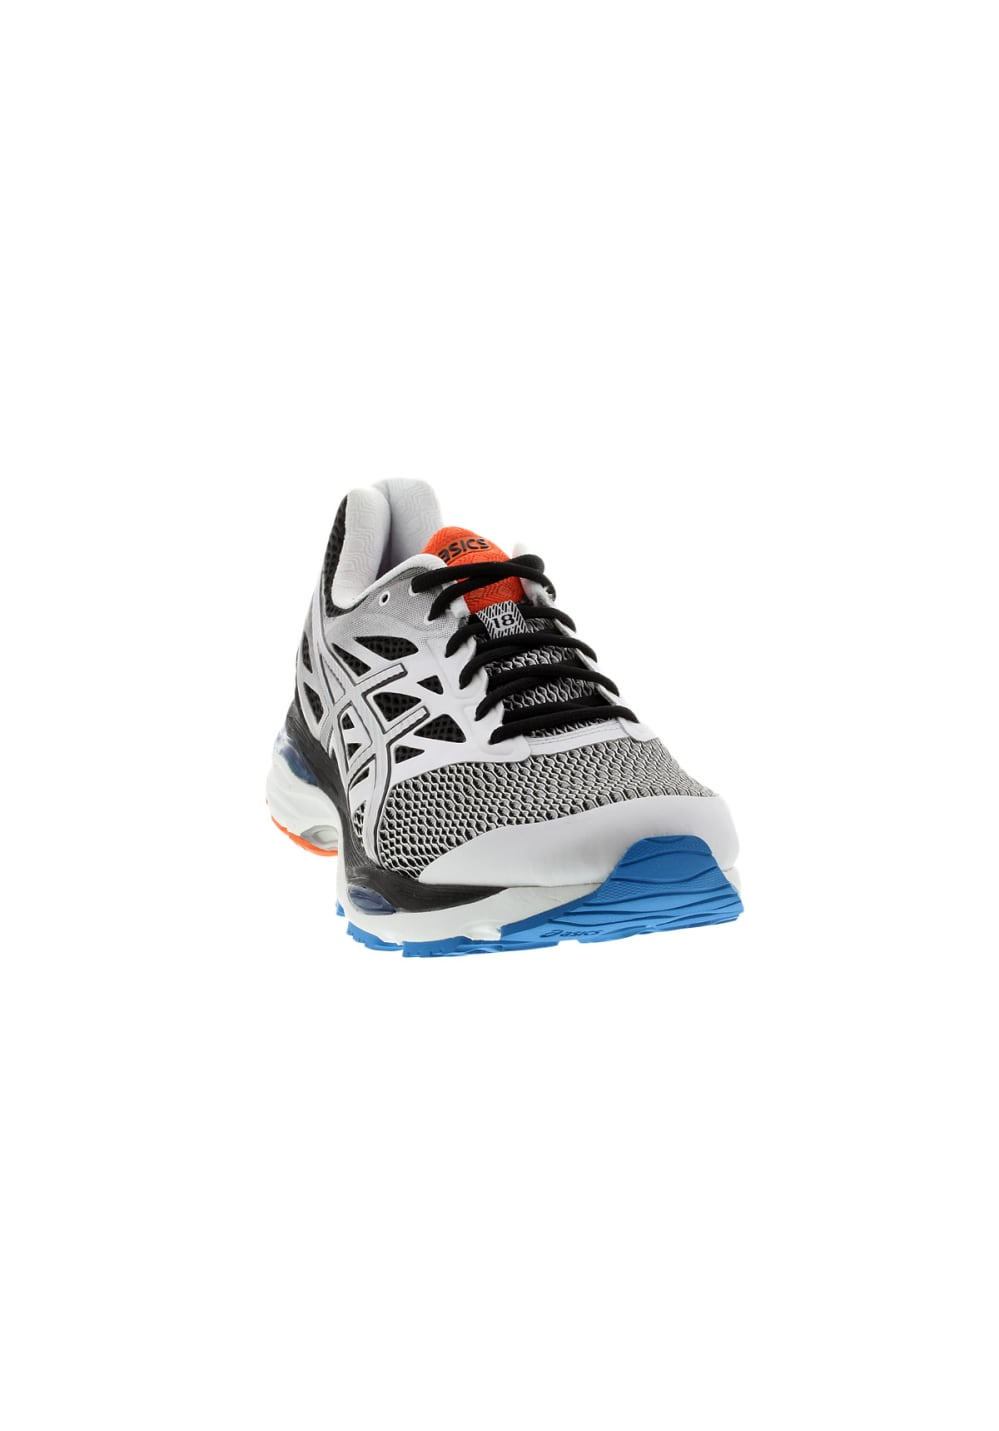 Running Chaussures Homme Gris Pour Gel Cumulus Asics 18 H9ED2I